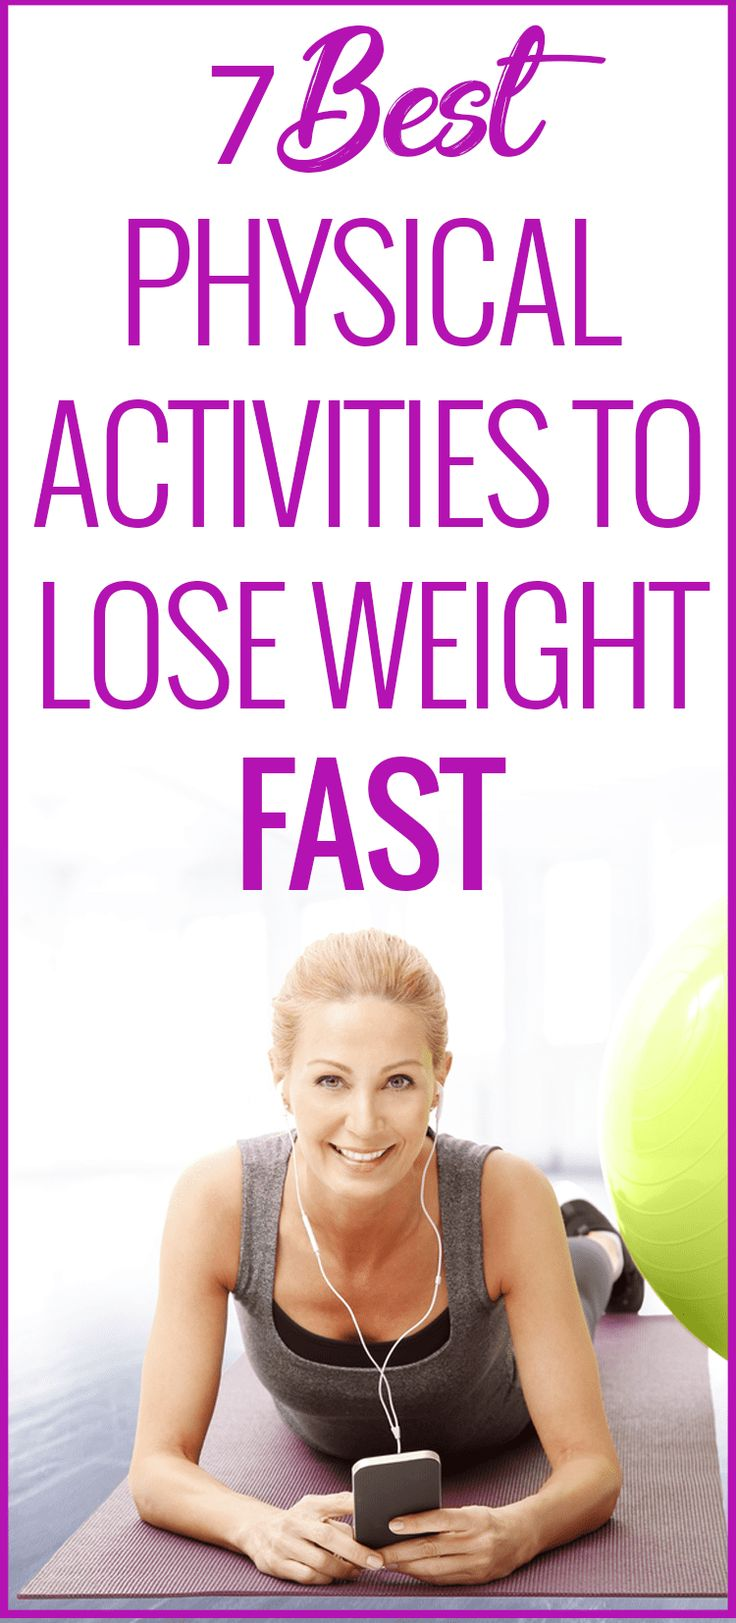 Physical activities to lose weight fast #fitness